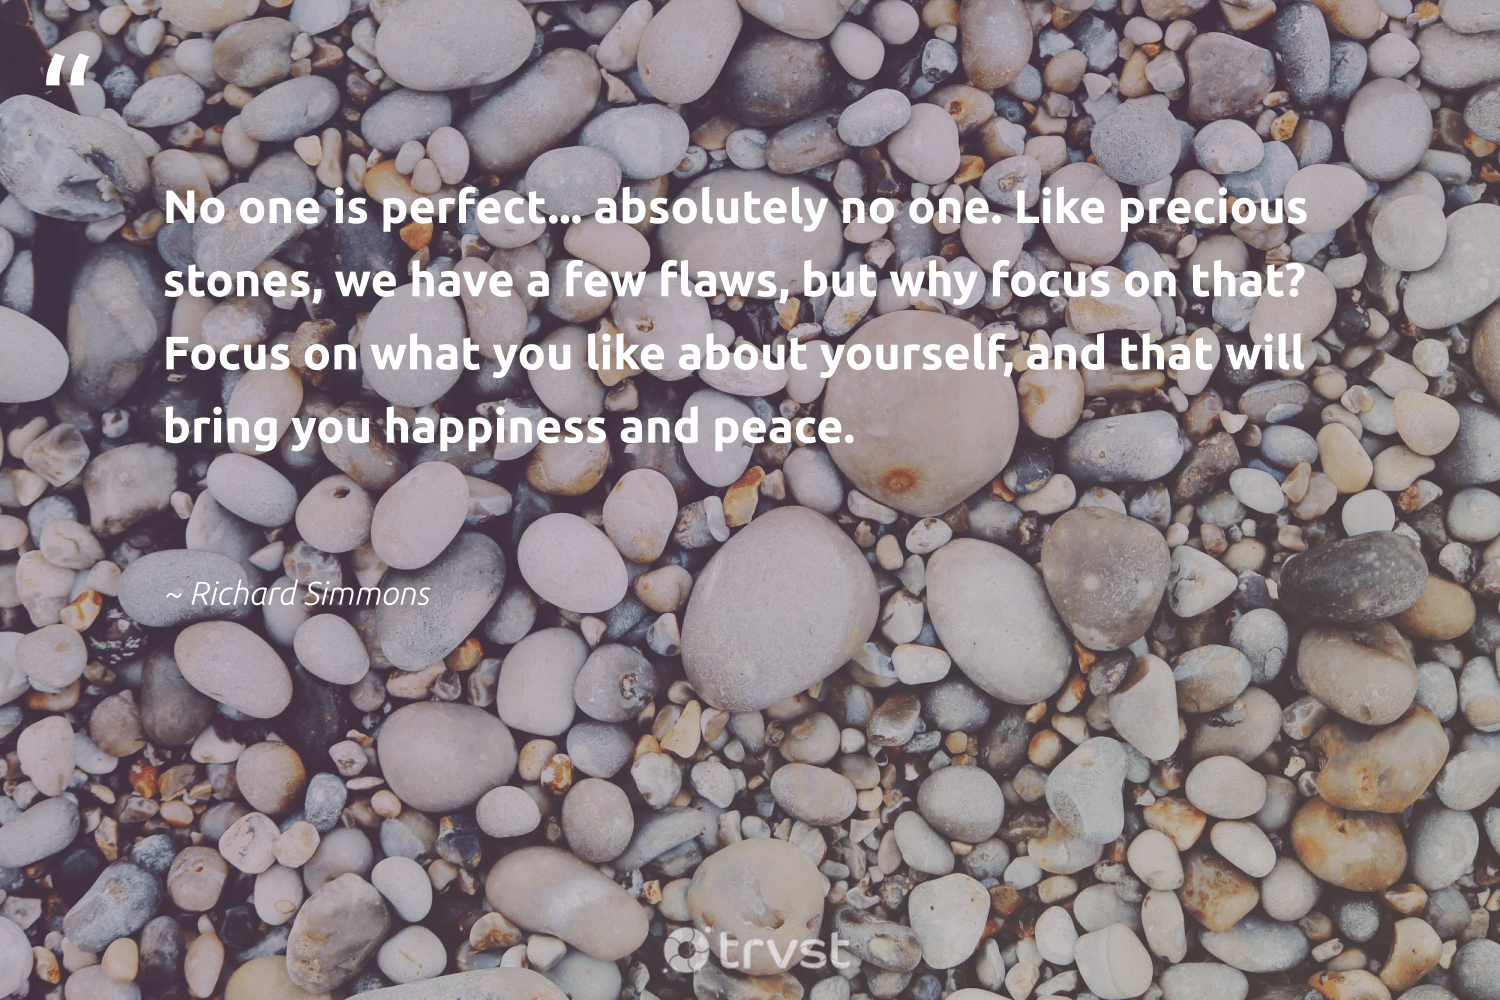 """""""No one is perfect... absolutely no one. Like precious stones, we have a few flaws, but why focus on that? Focus on what you like about yourself, and that will bring you happiness and peace.""""  - Richard Simmons #trvst #quotes #peace #happiness #focus #productivity #nevergiveup #futureofwork #ecoconscious #success #mindset #softskills"""